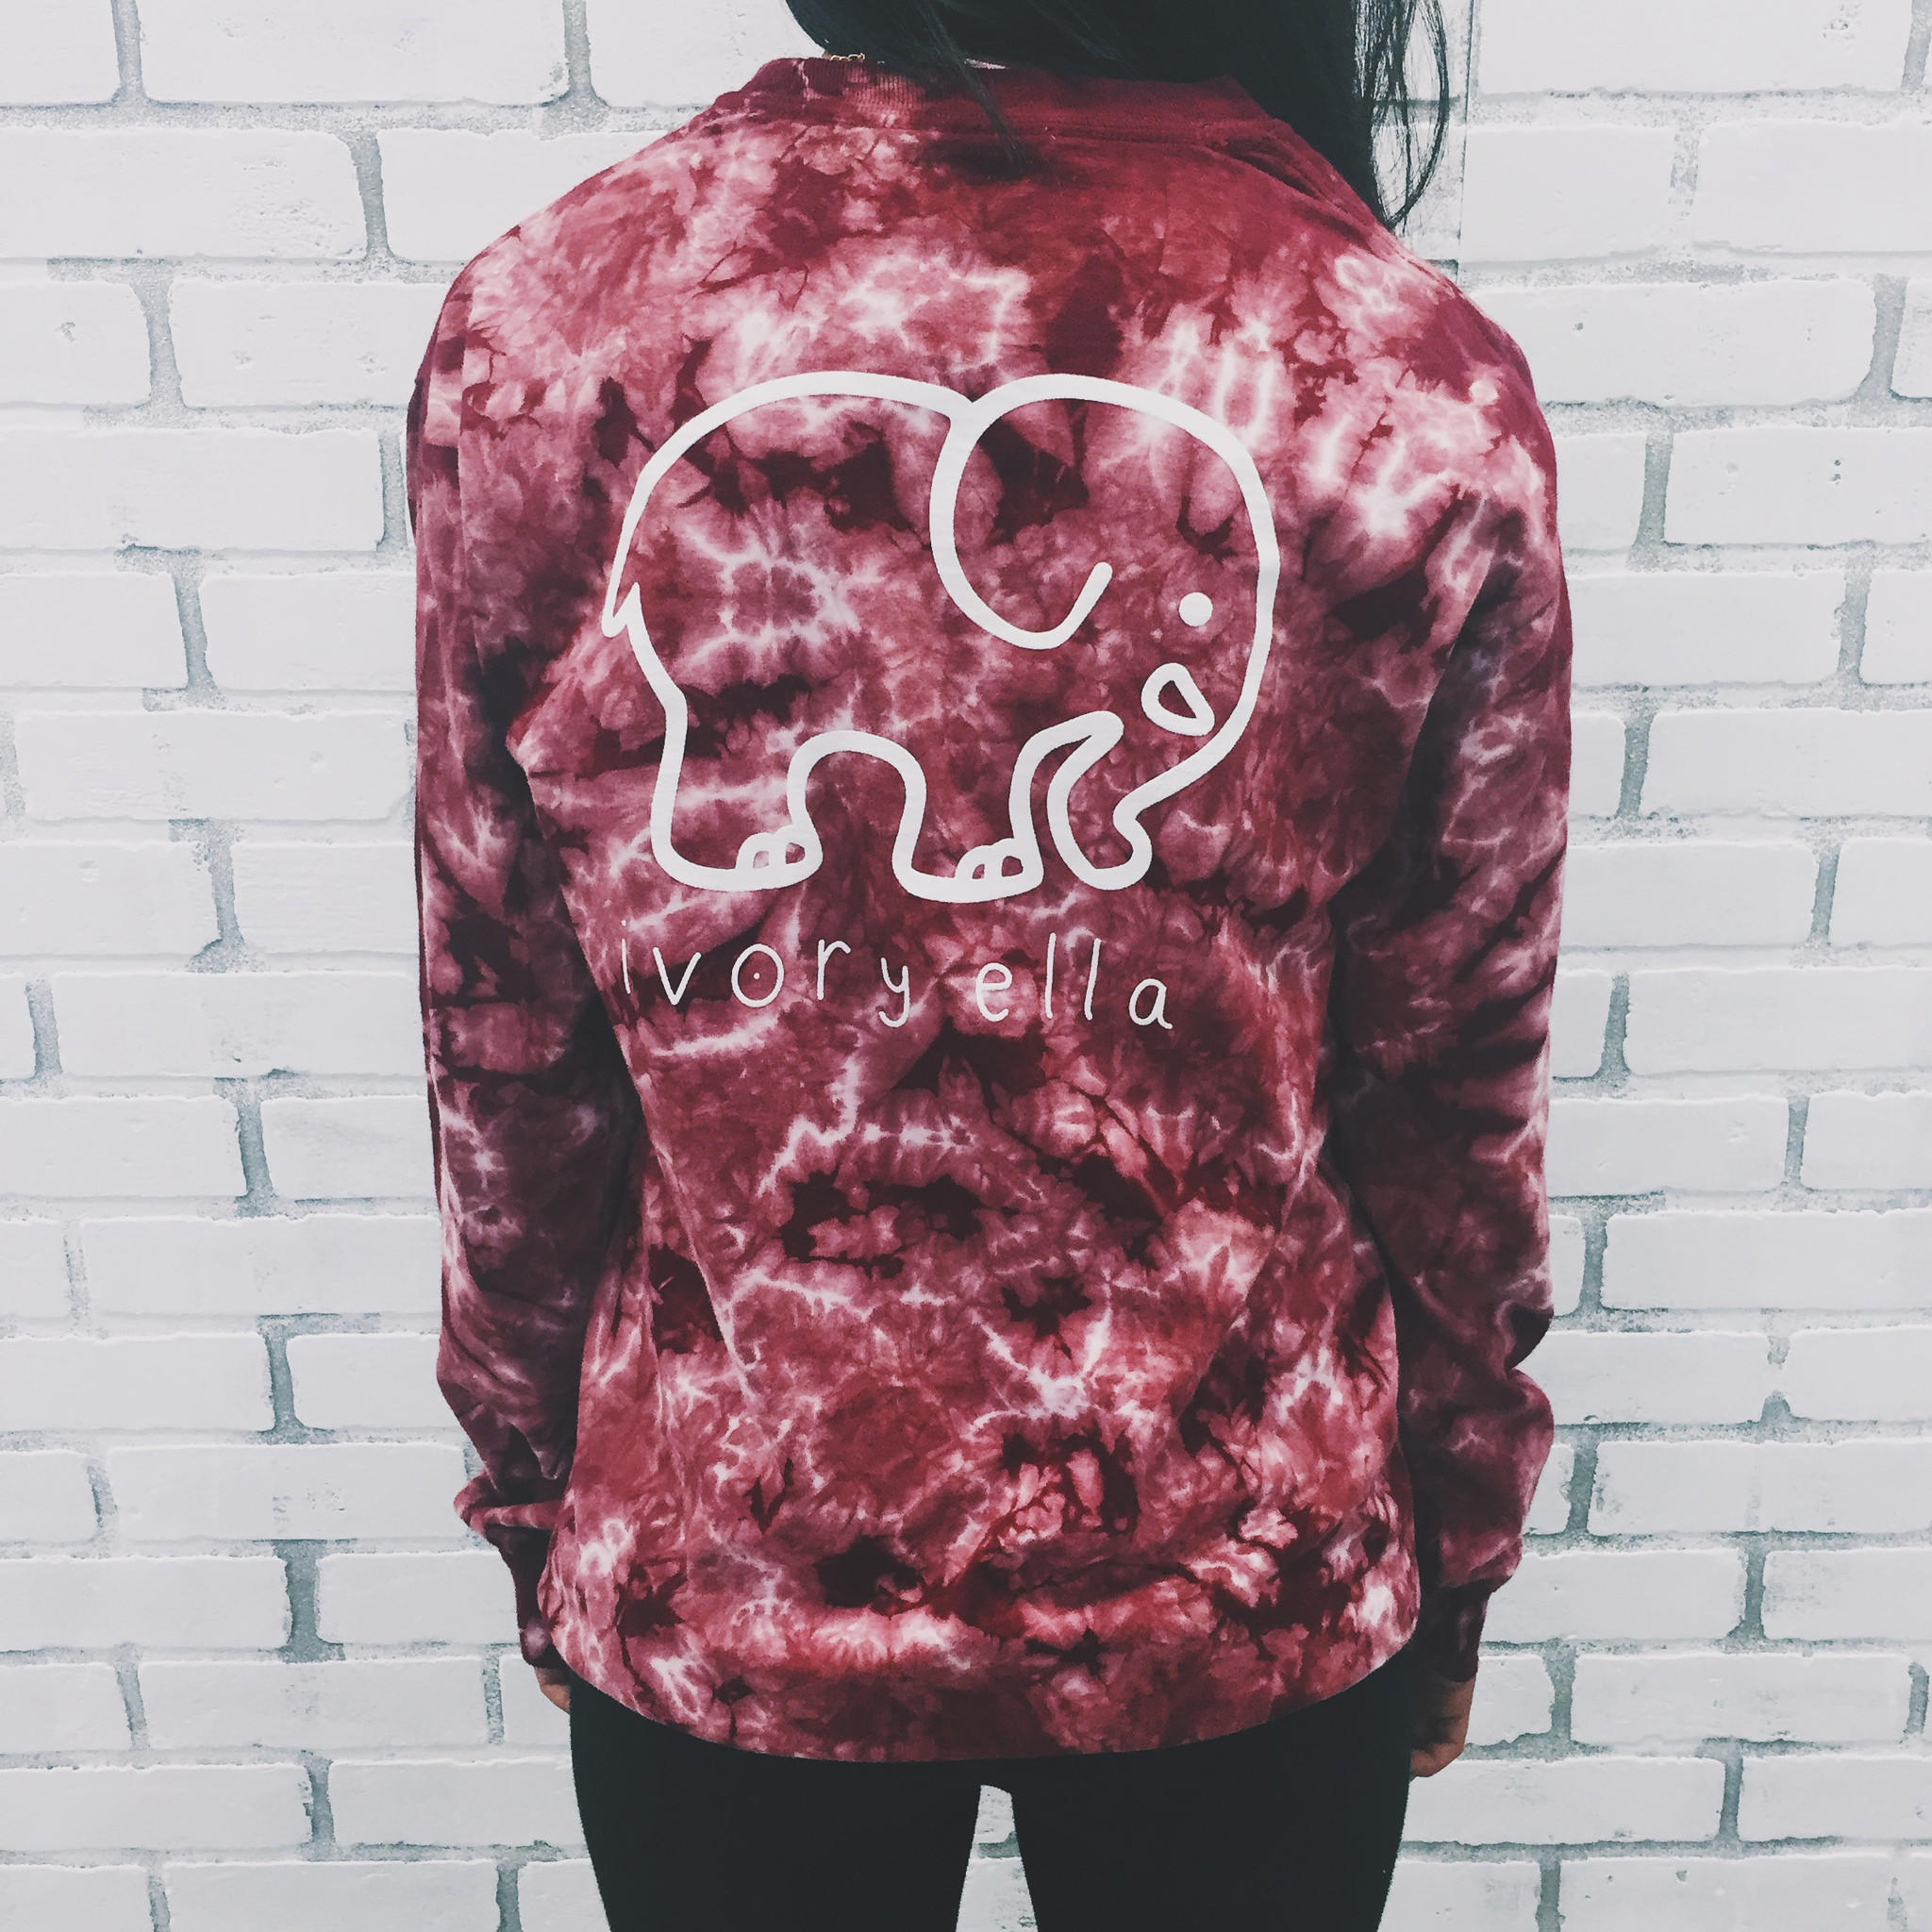 f046c9617 Pocketed Maroon Acid Wash Classic Print. Save See It.  ivoryella